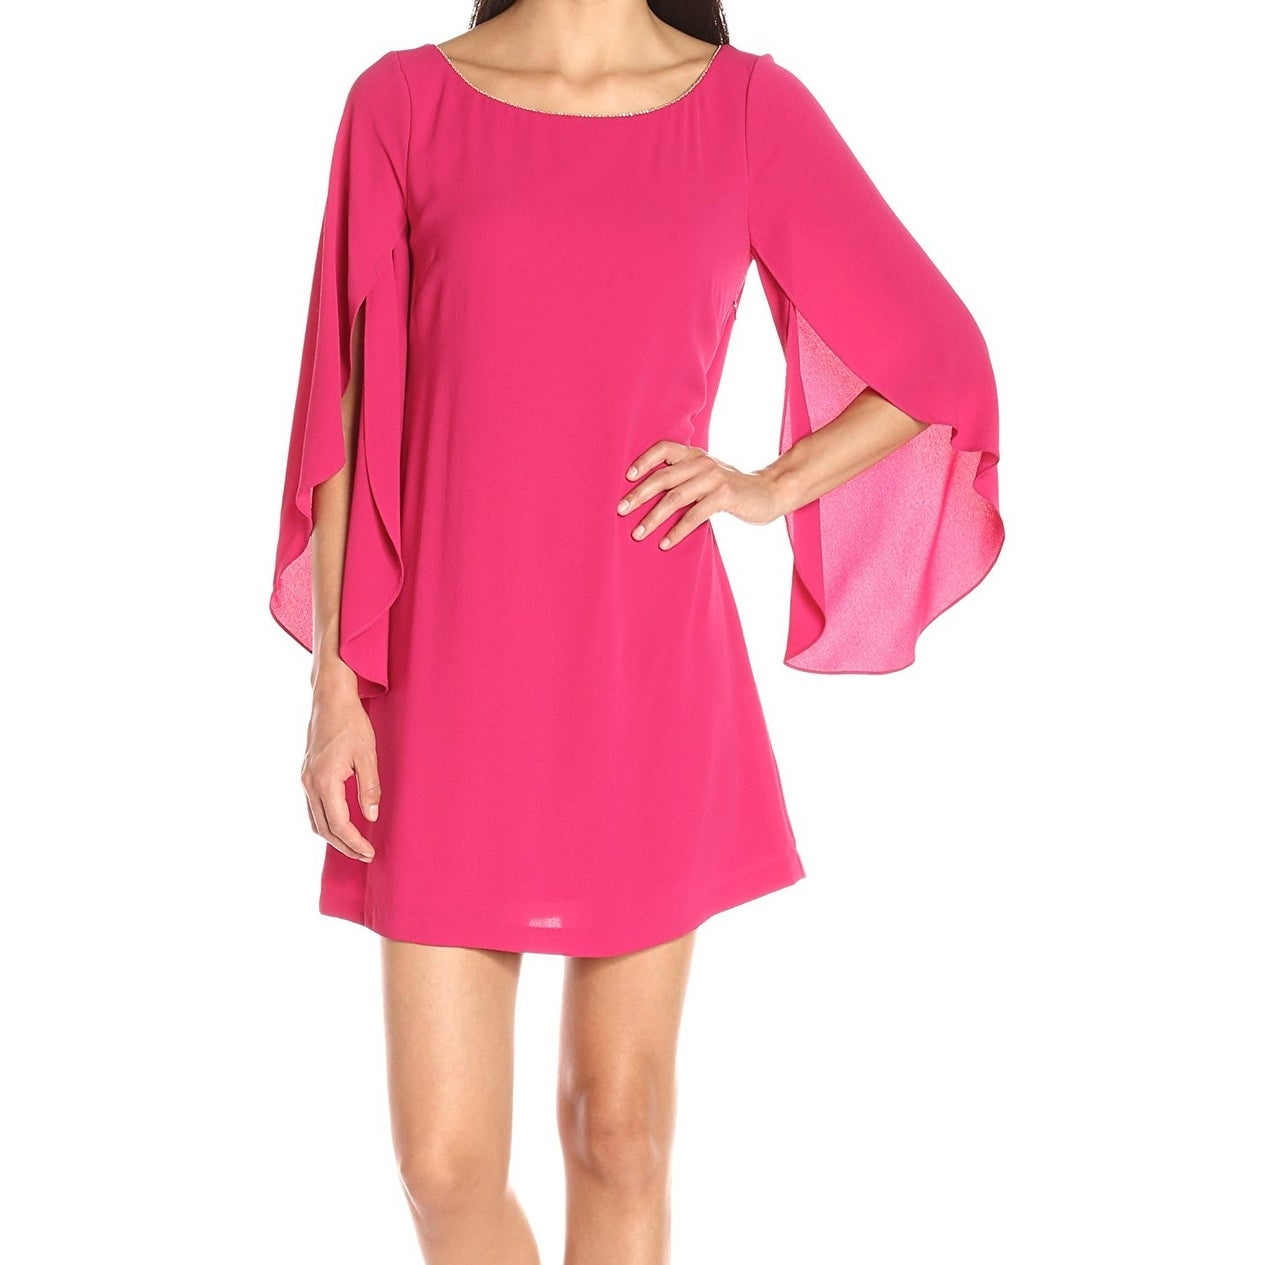 Shop Jessica Simpson NEW Hot Pink Womens Size 4 Long-Sleeve Shift ...